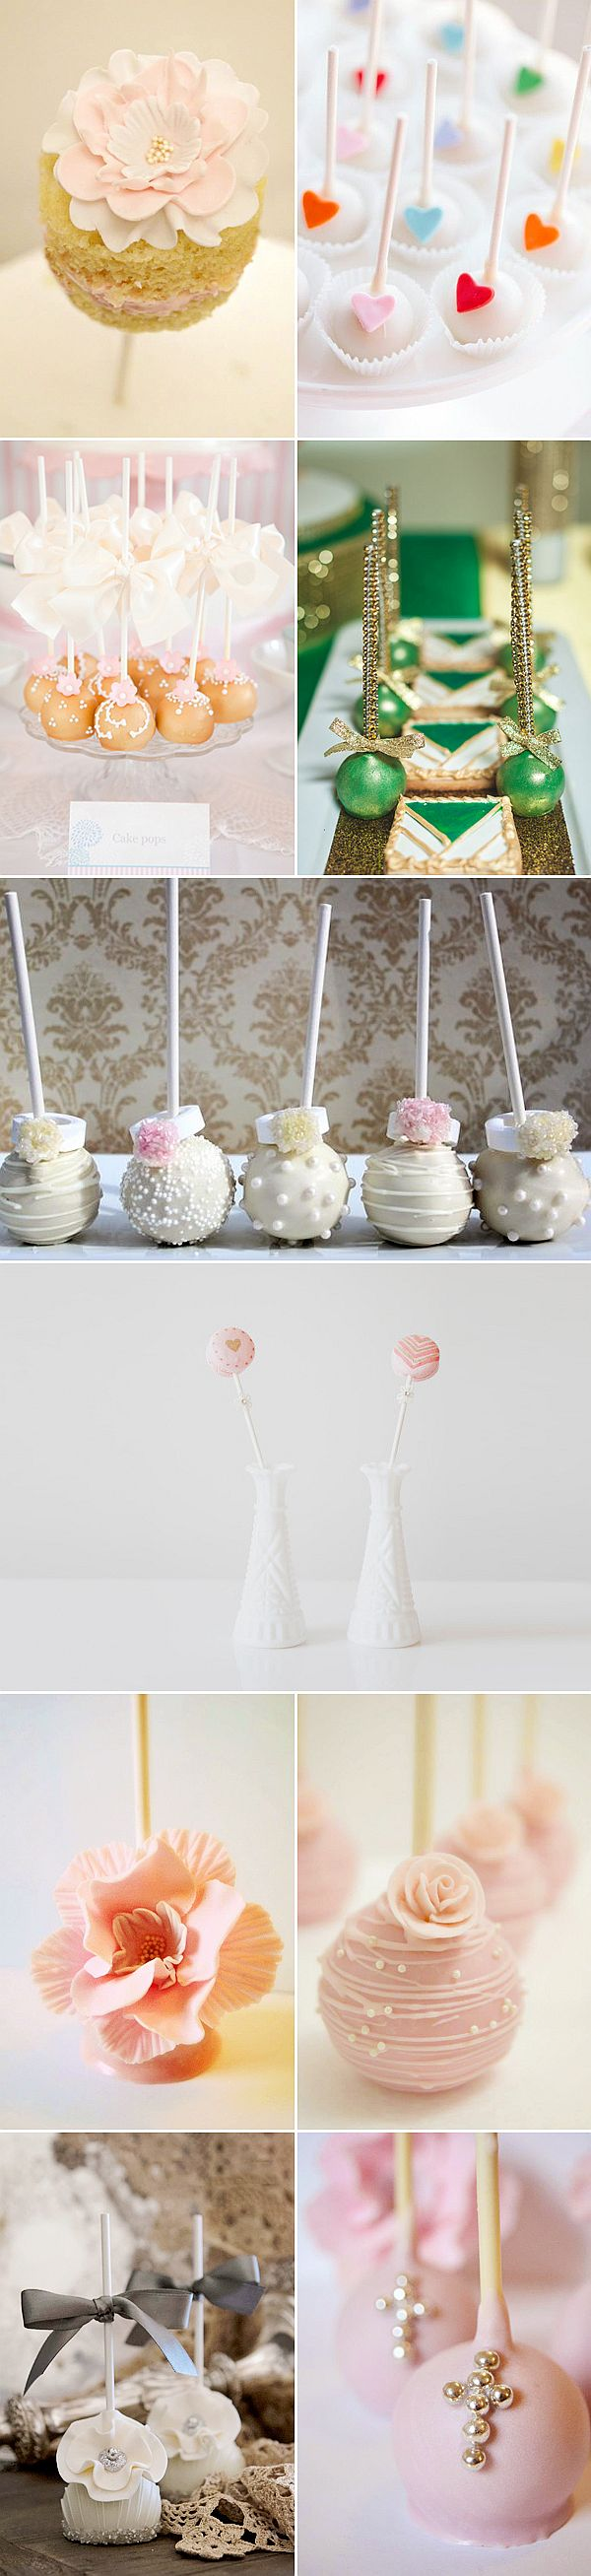 Awesome cakepops for a great birthday party Easy Guide to Making Awesome Cake Pops [Video + 19 Mouth Watering Ideas]